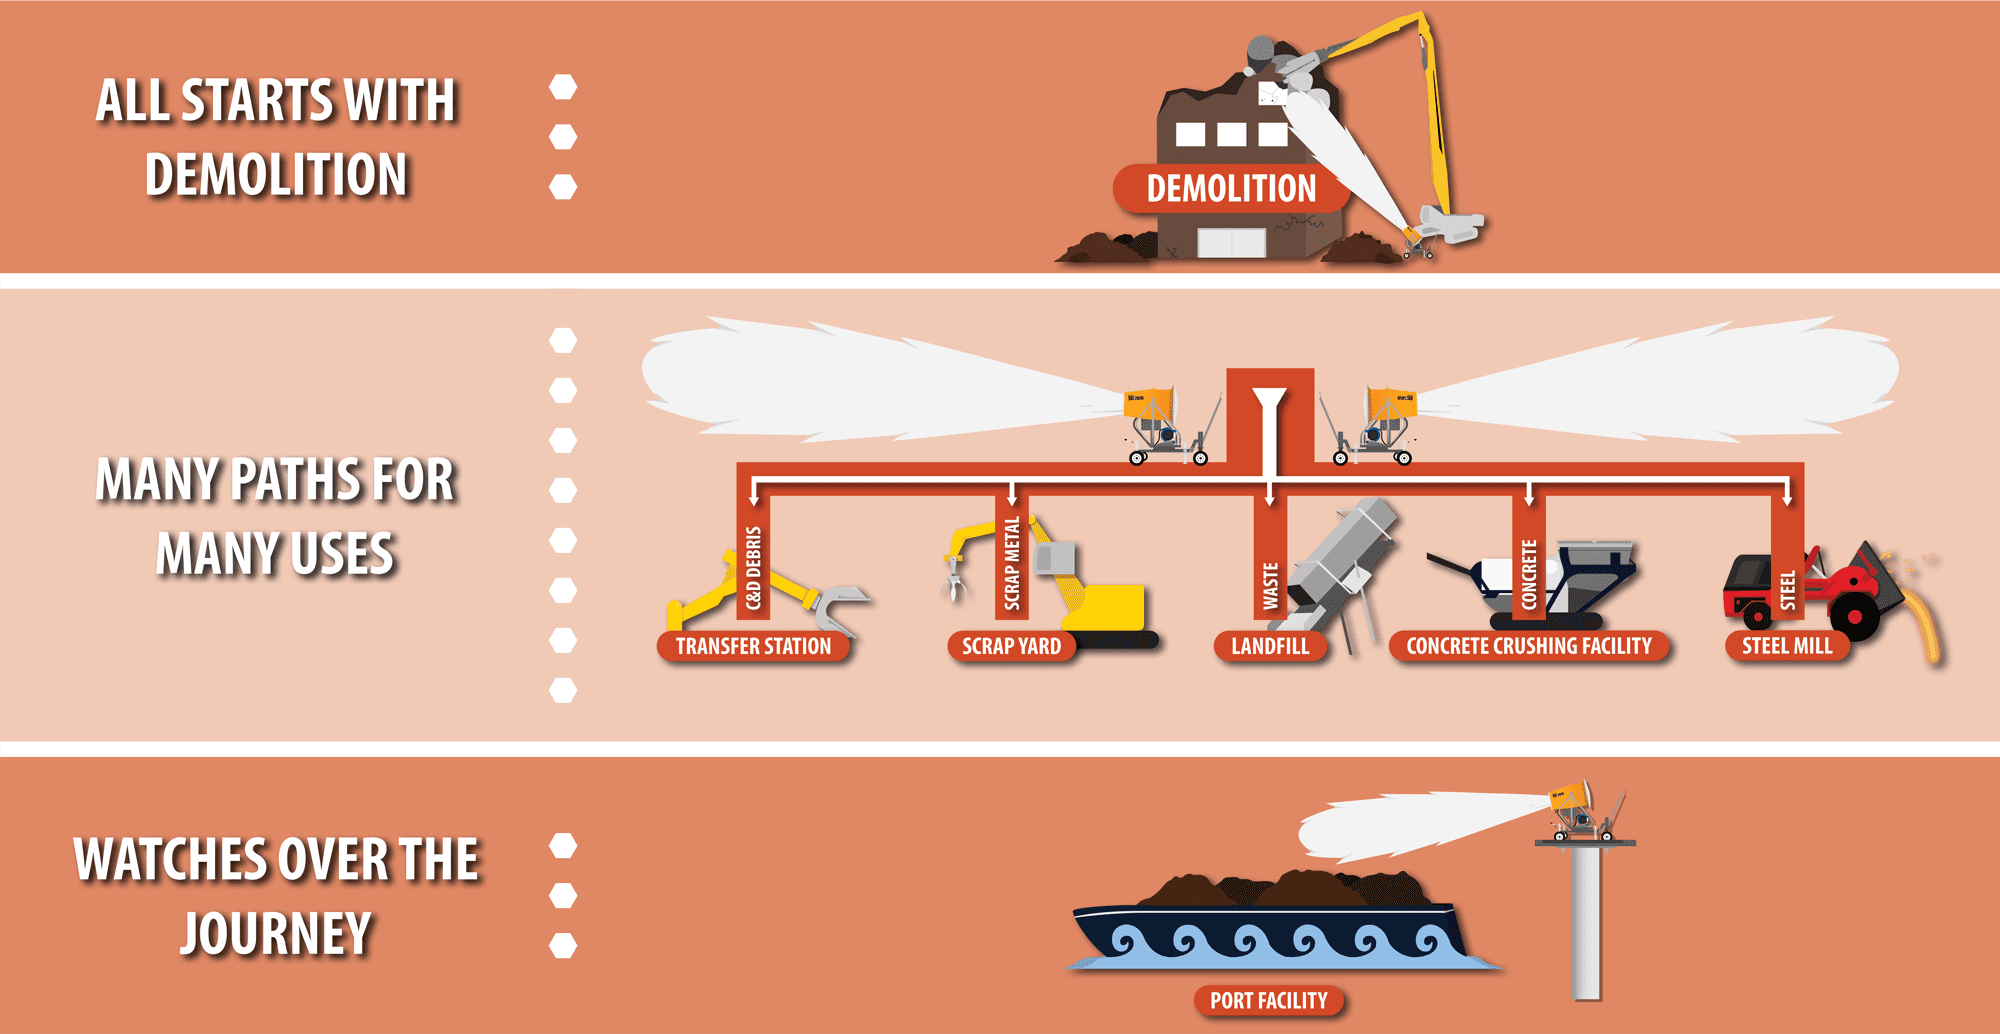 DTI Dust Control Port Facilities Diagram